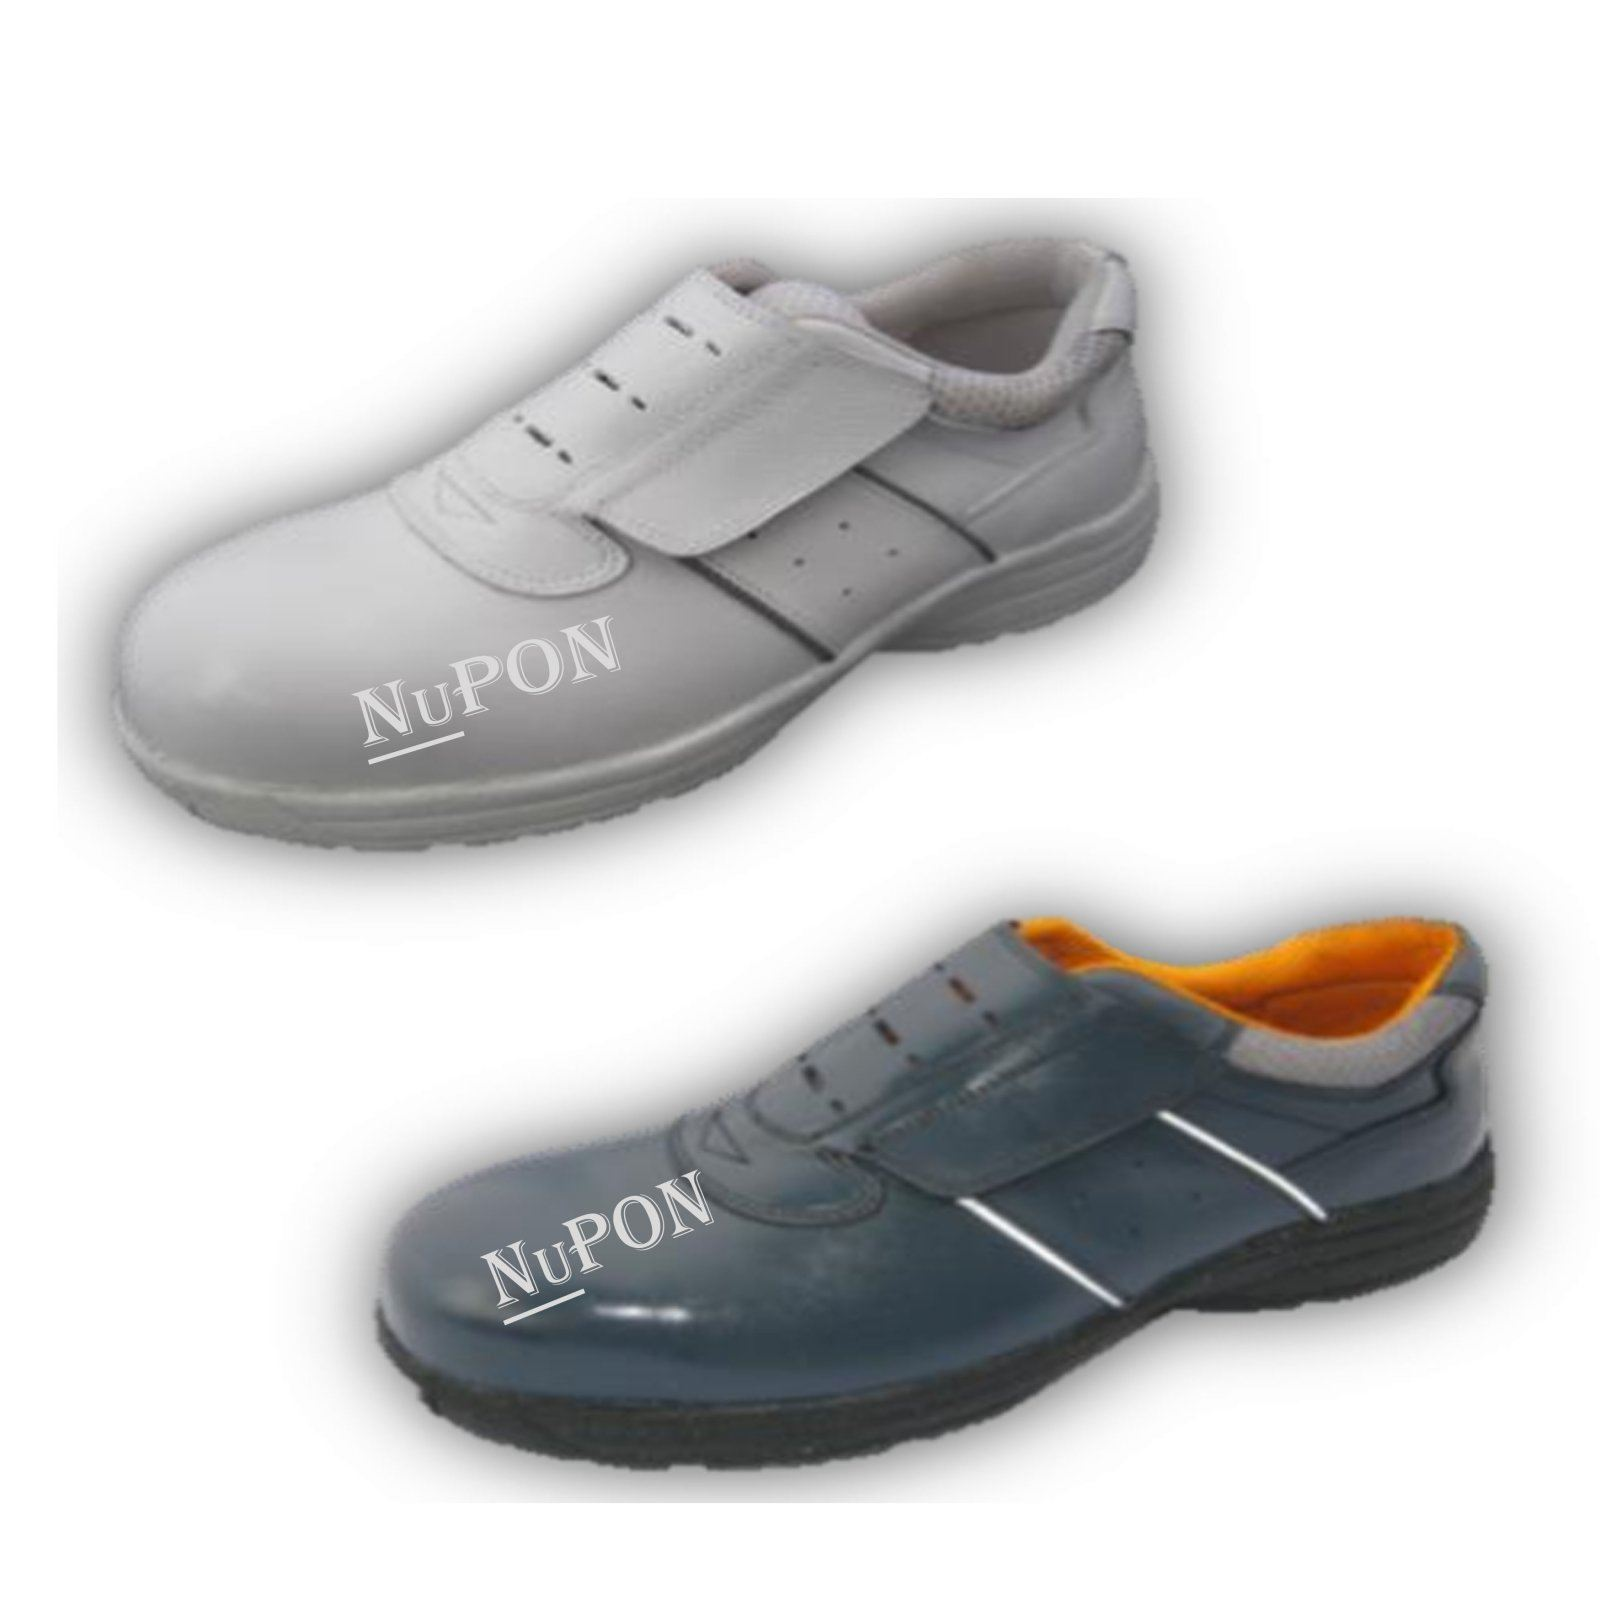 tatic Dissipative Safety Shoes